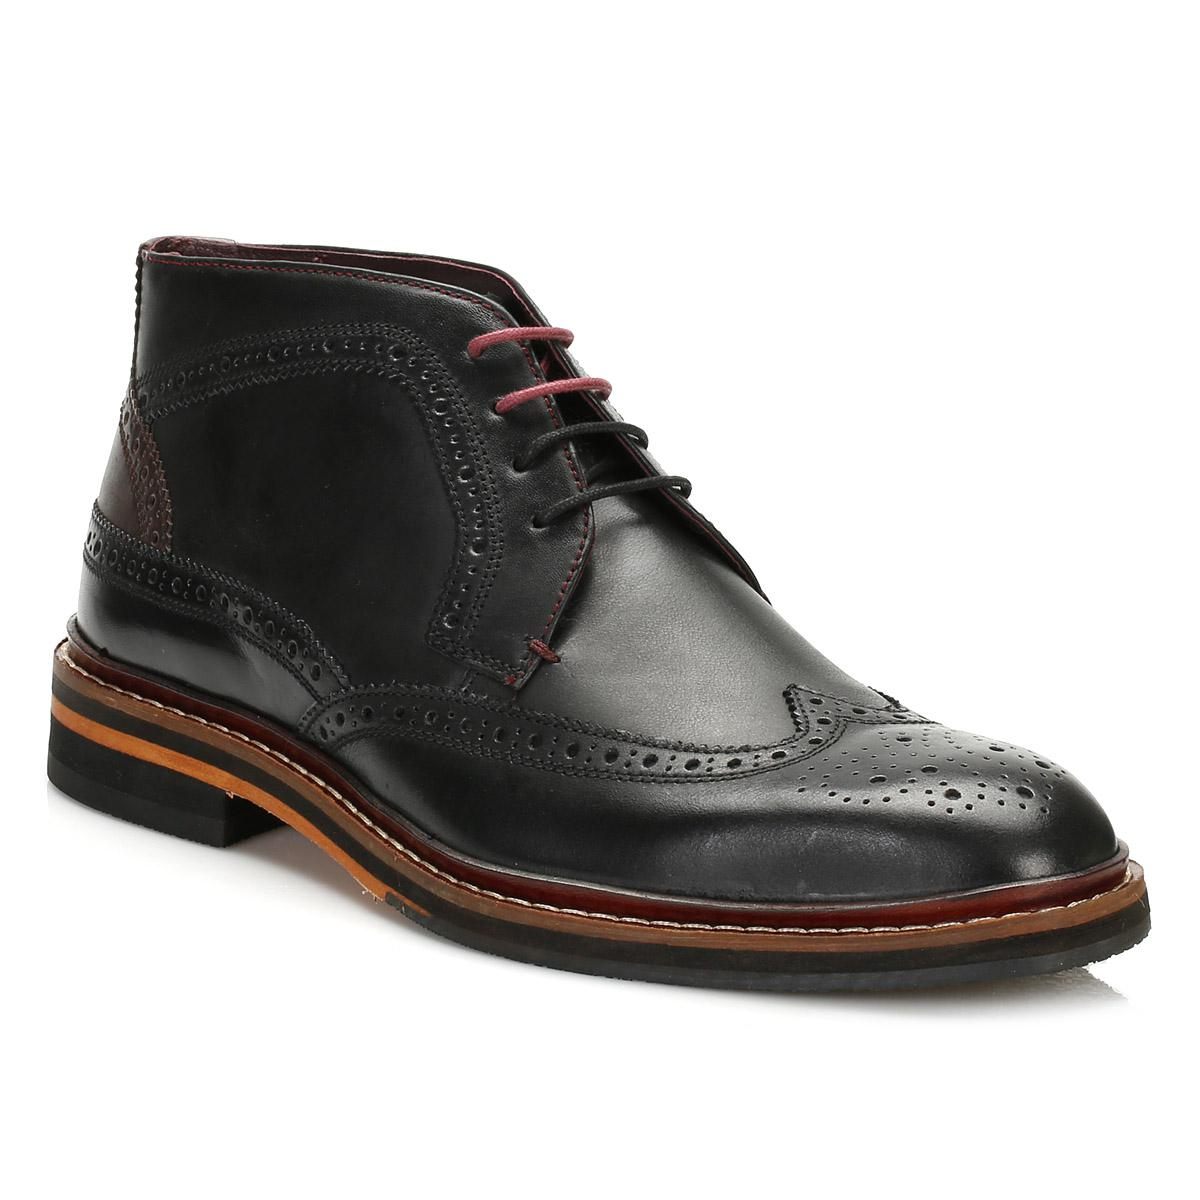 Ted Baker London Brown Shoes